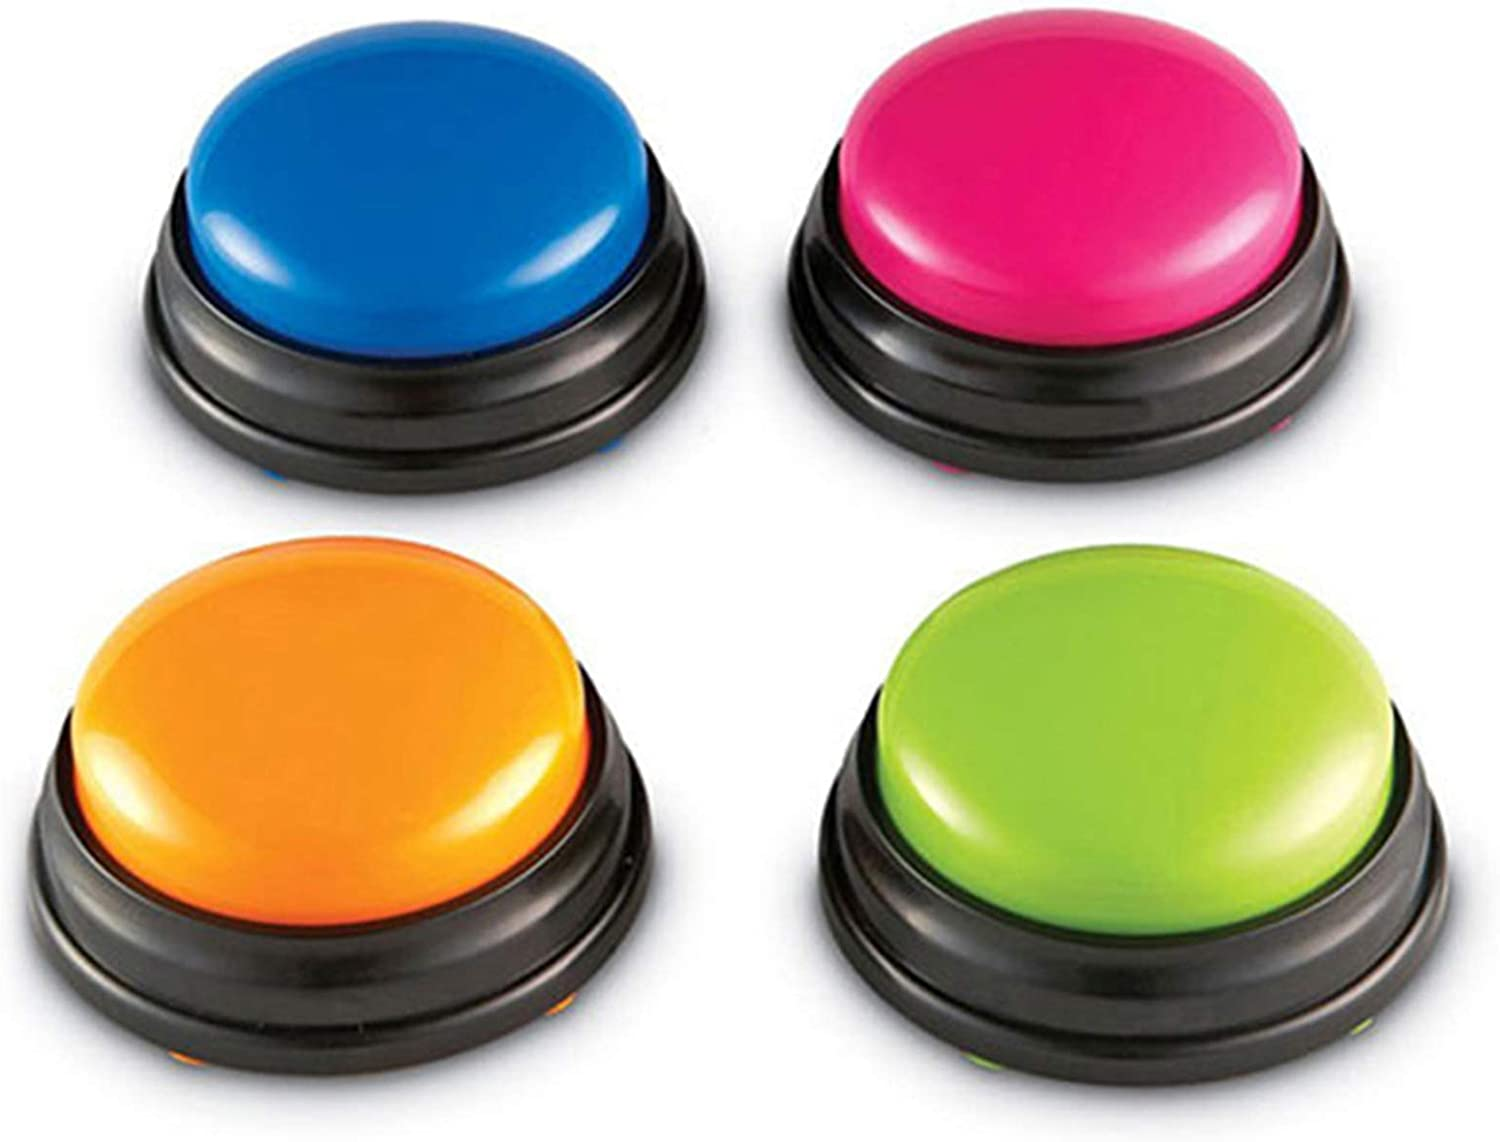 Decdeal Answer Buzzers - Recordable Button - Dog Training Buzzer - Custom Easy Button - Record & Playback Your Own 30S Message - Set of 4 (Battery Not Included)